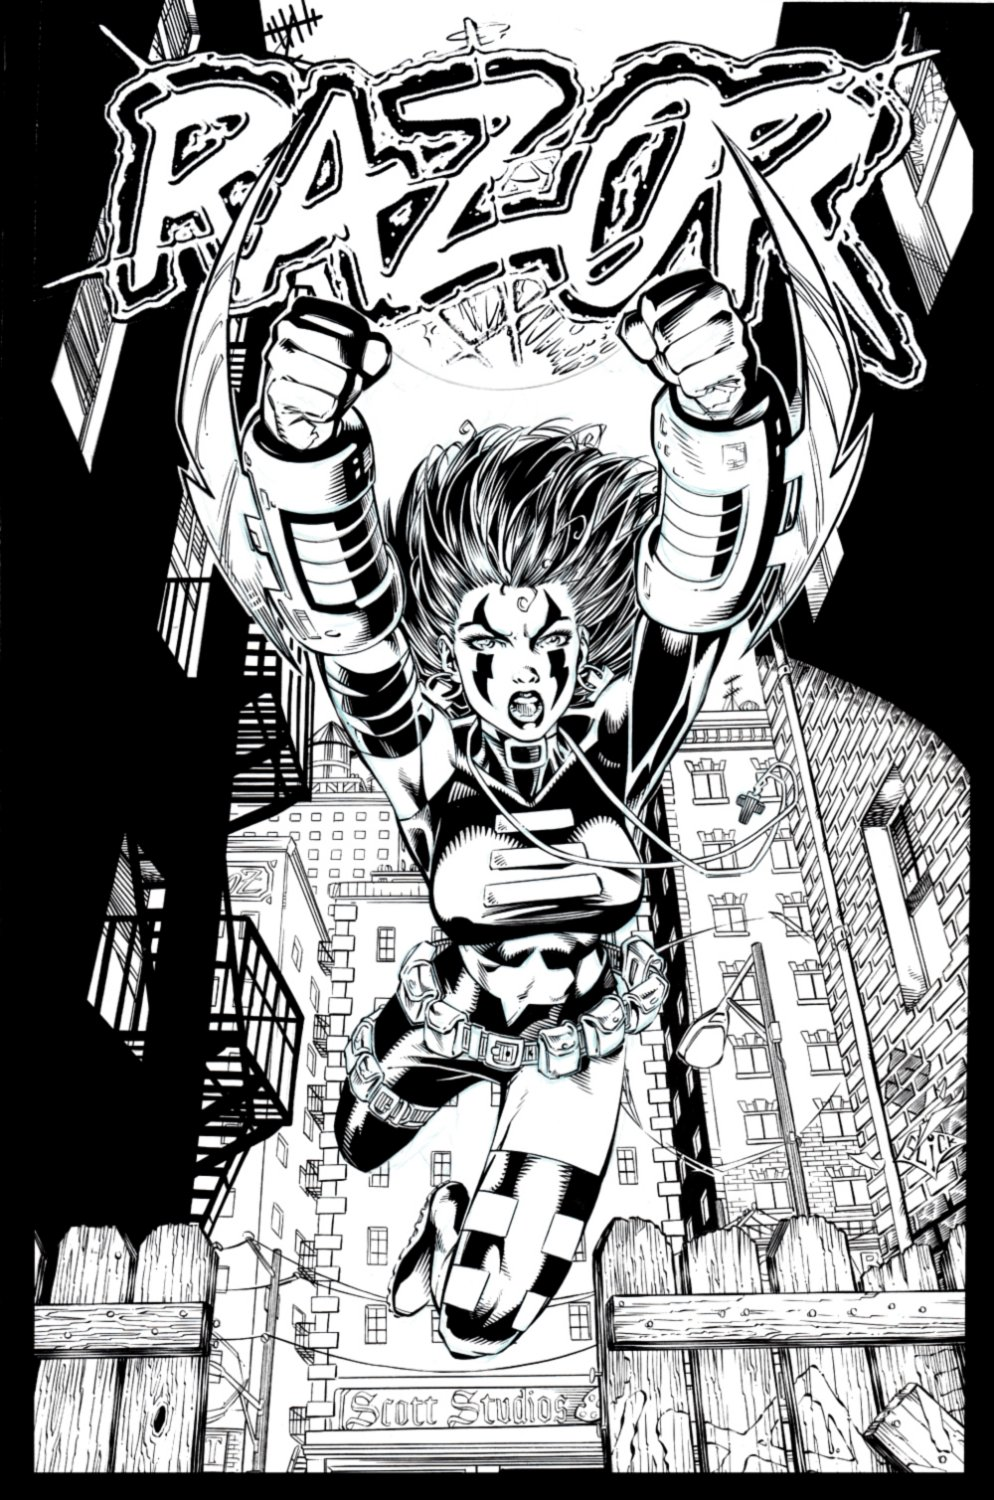 Razor: Uncut #23 Cover! (AWESOME ACTION COVER!) 1996